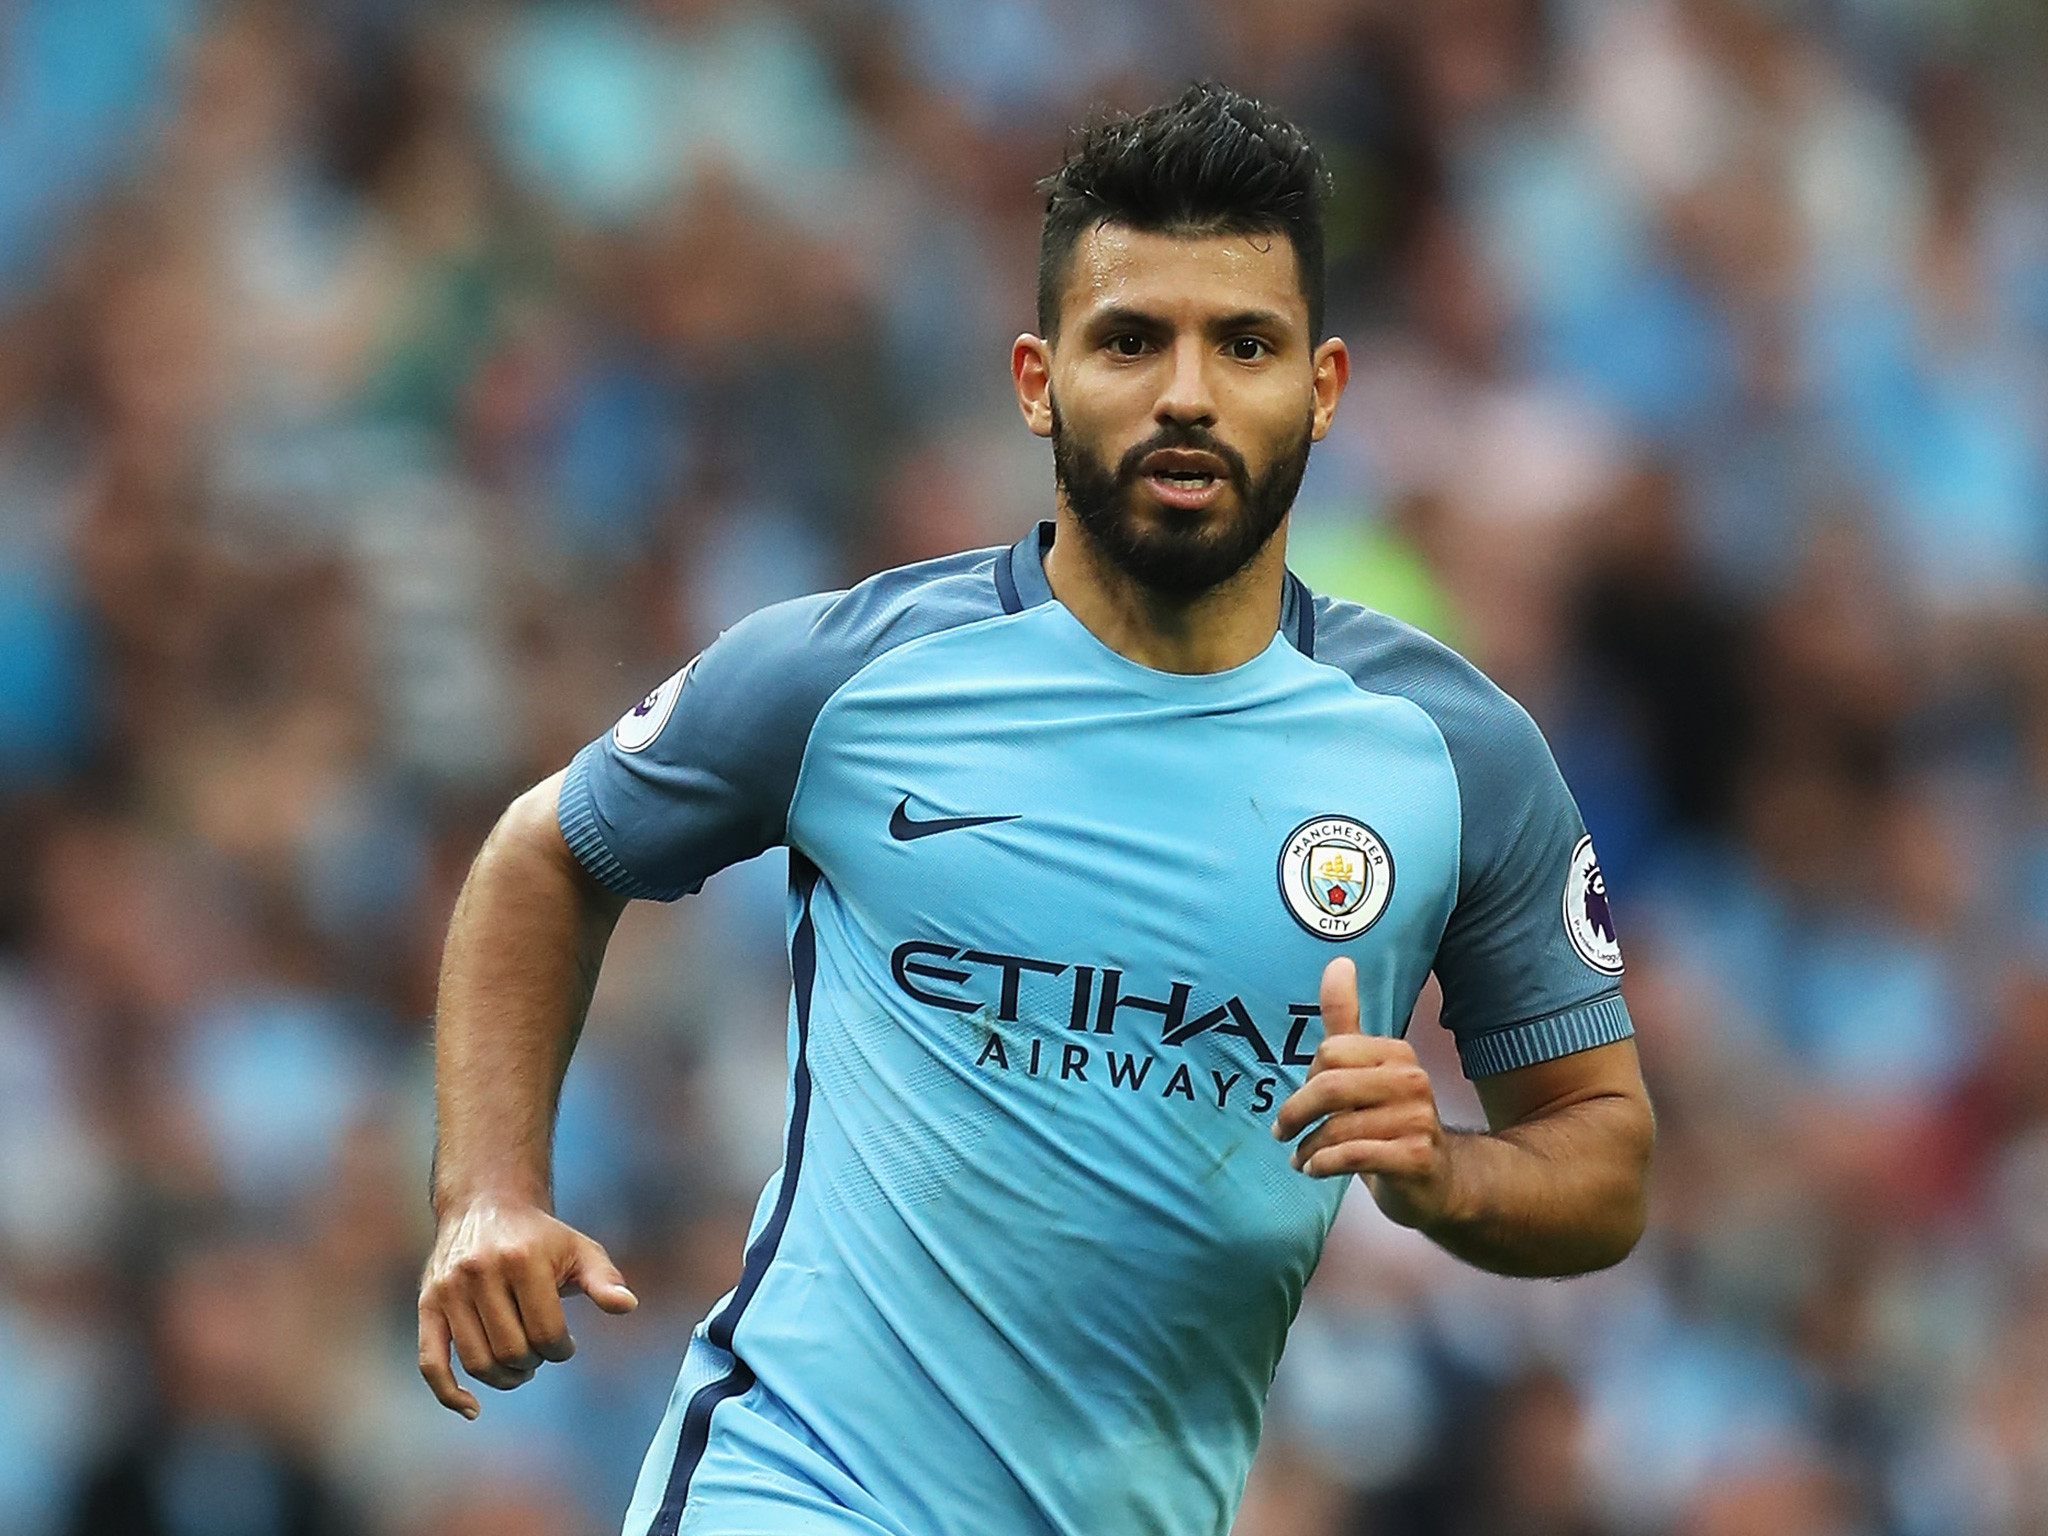 Sergio Aguero Wallpapers (80+ Images